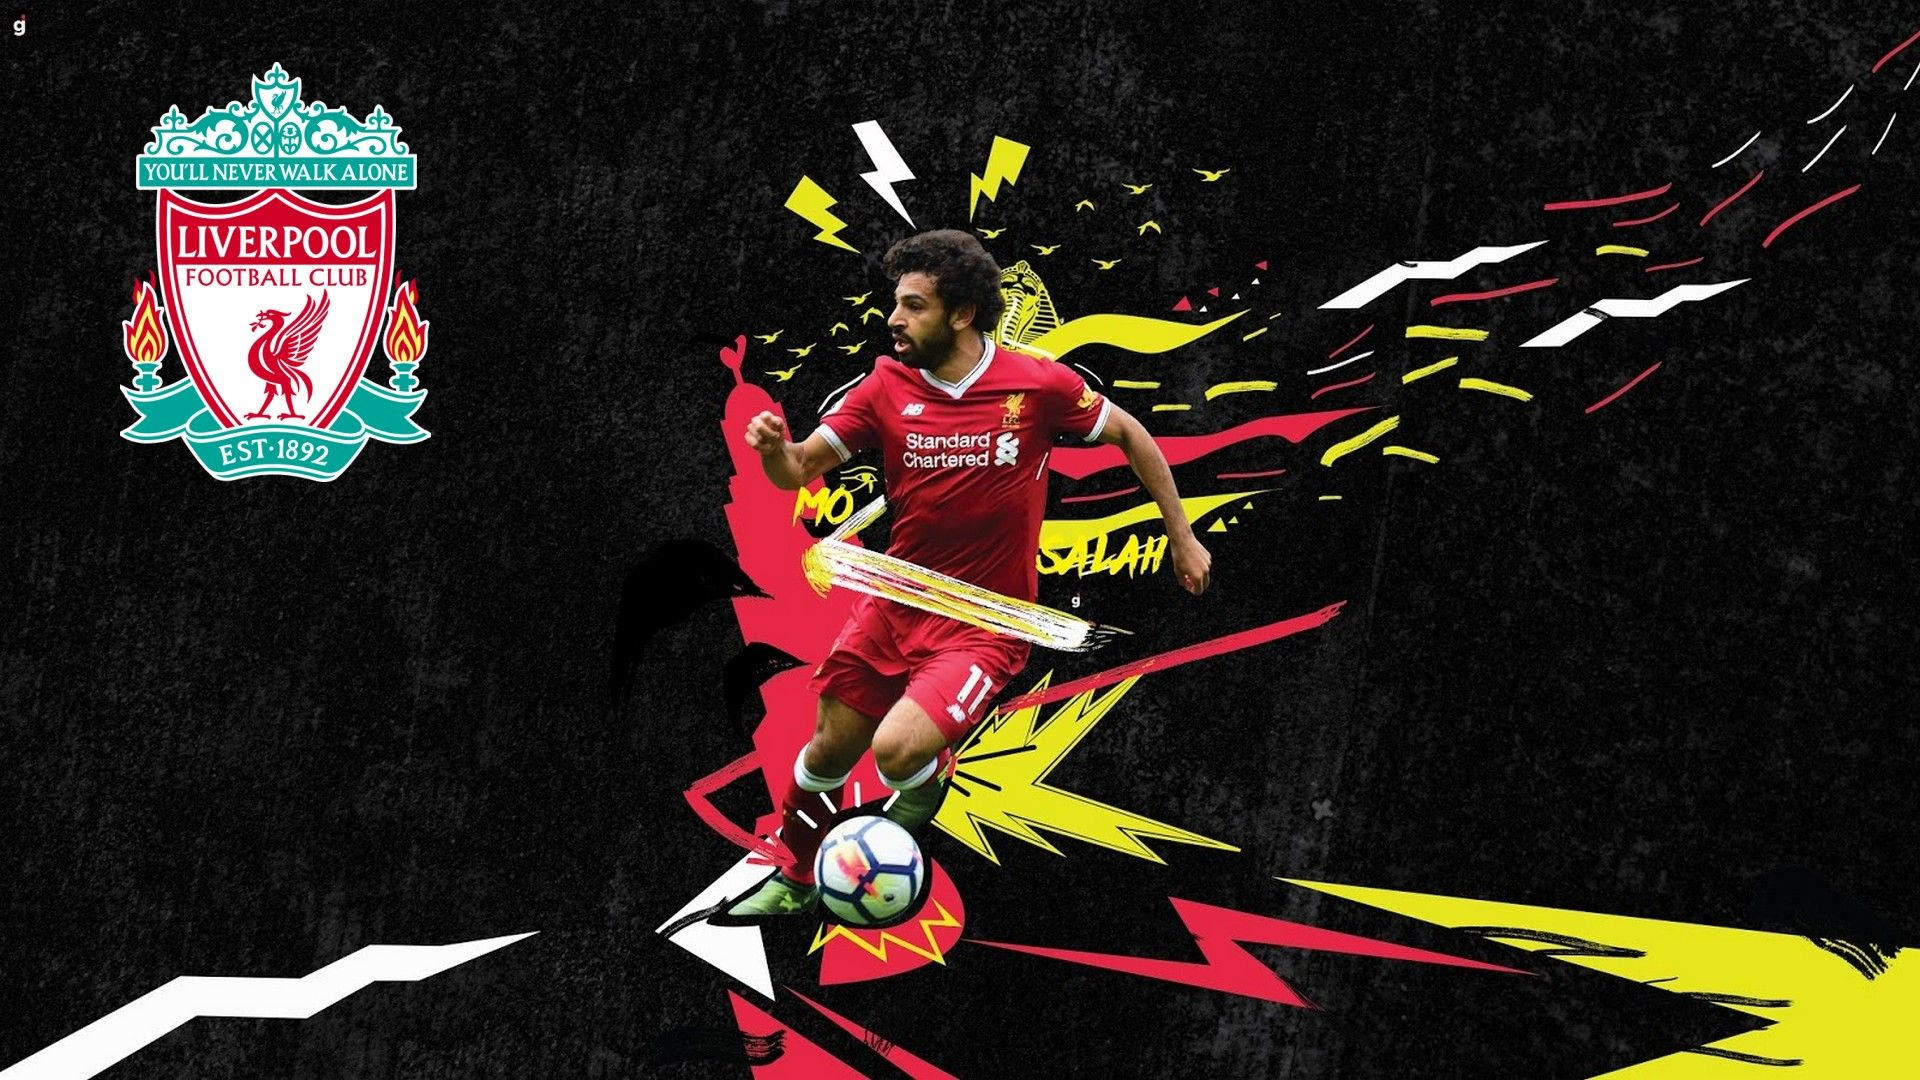 Top Free Liverpool Backgrounds